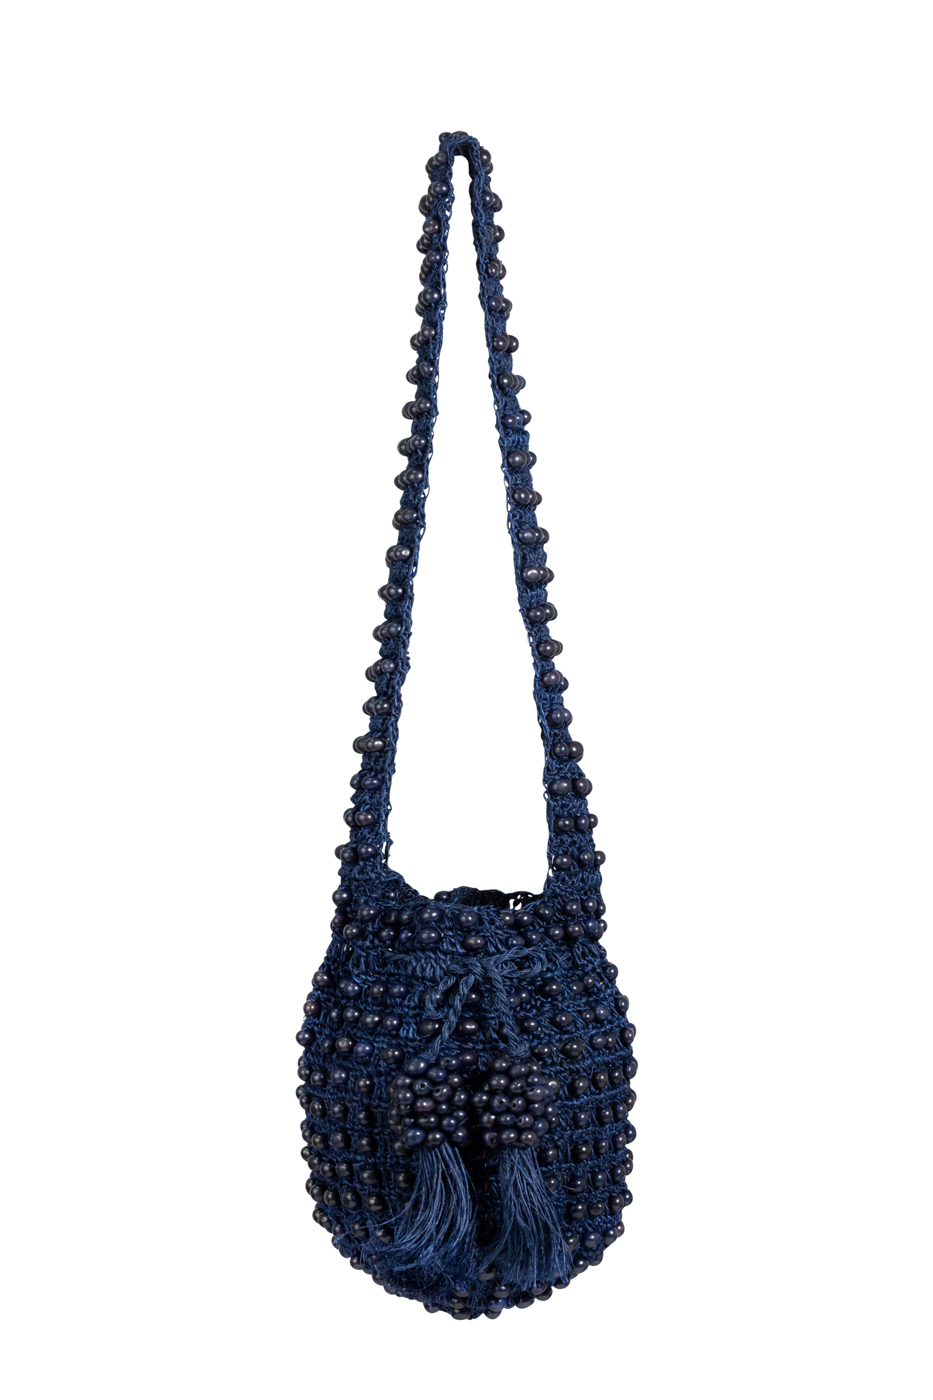 Backpack fique tagua blue neavy